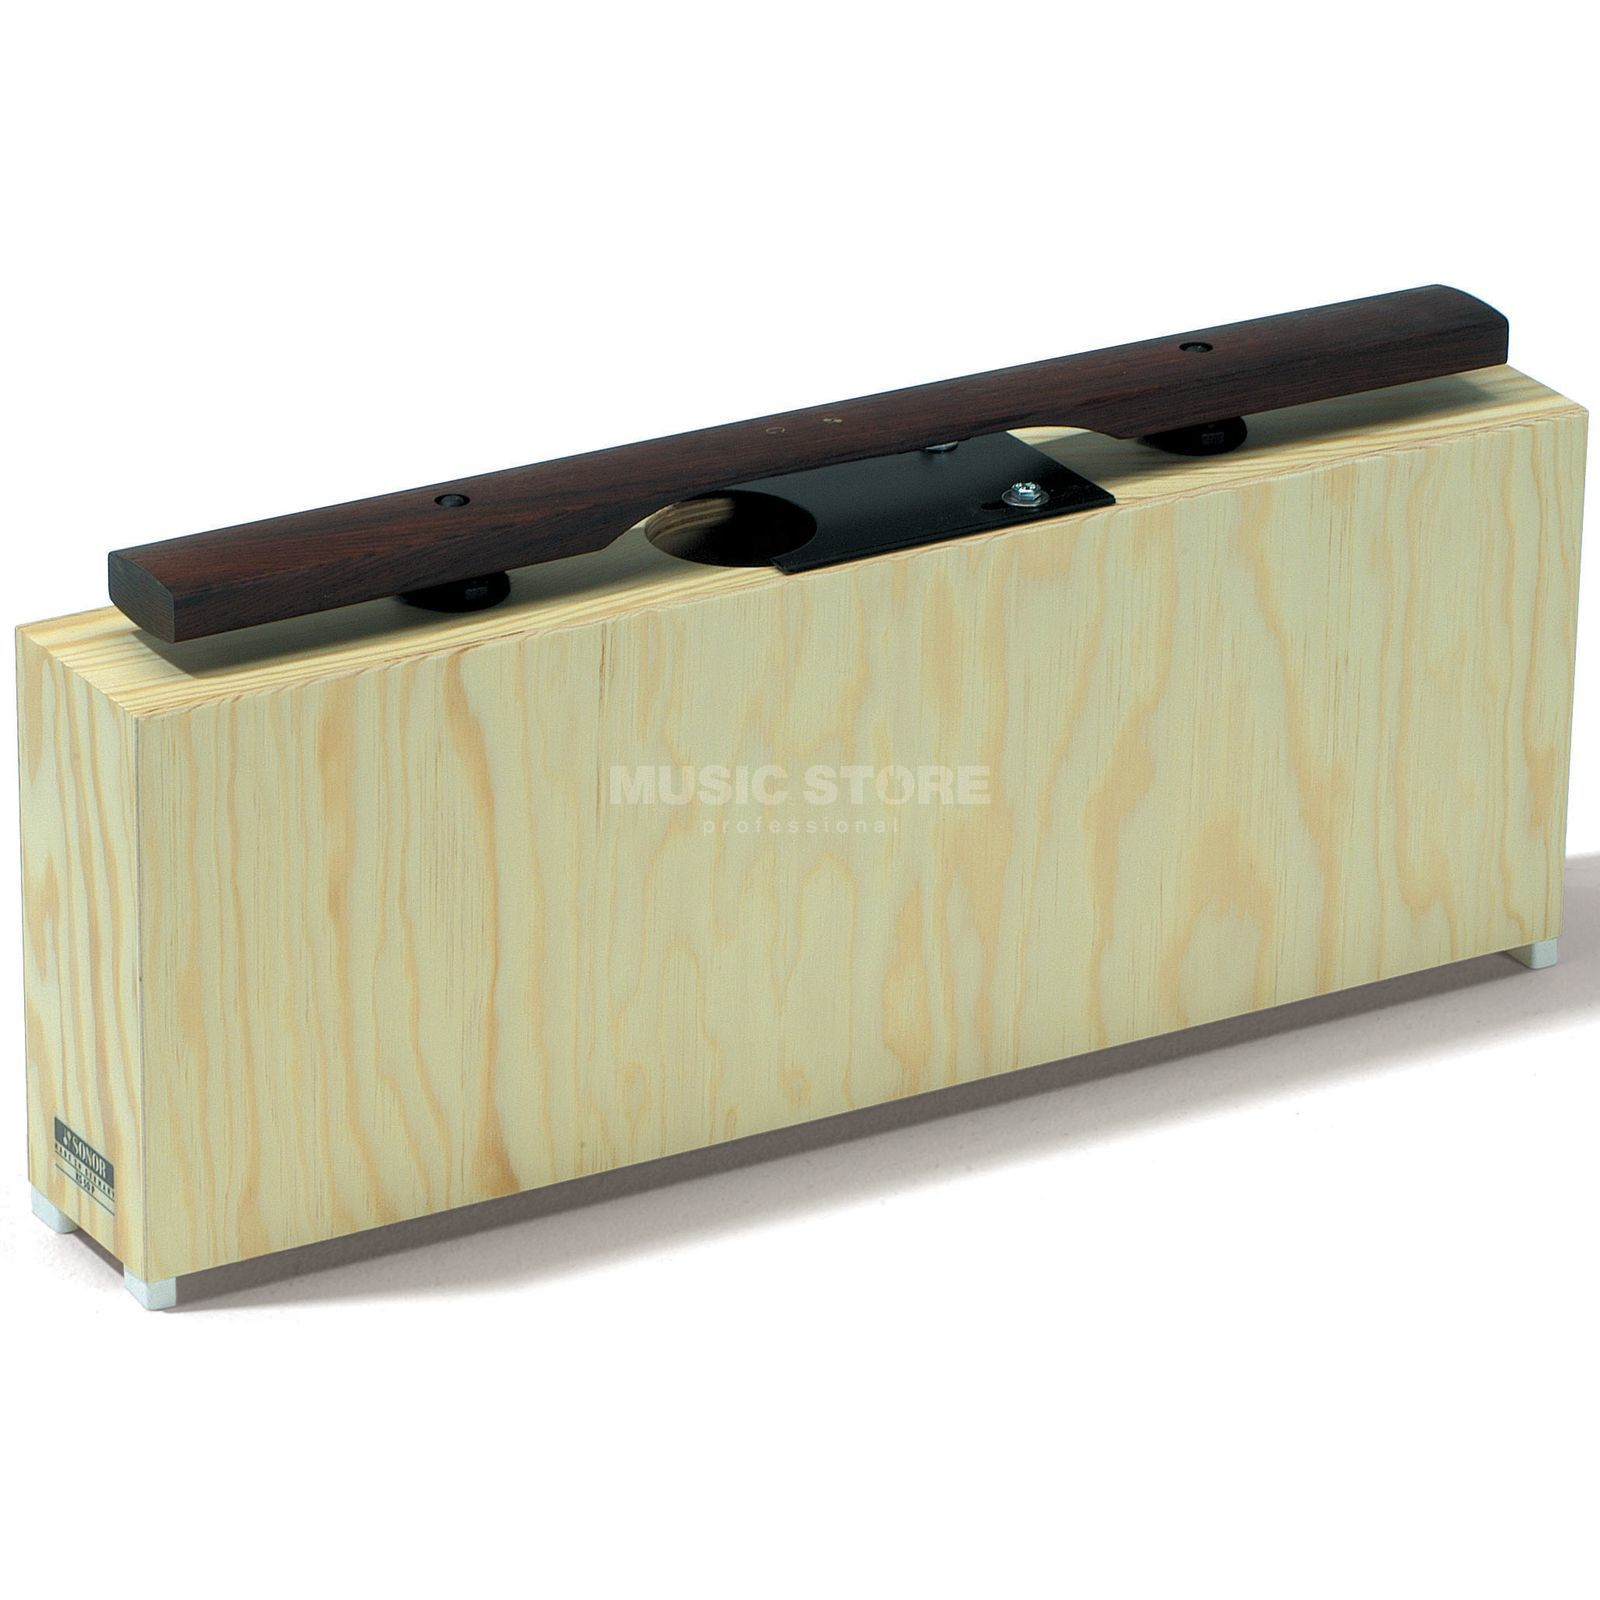 Sonor Chime Bar KS 50 P Meisterkl., Xylophone g Изображение товара